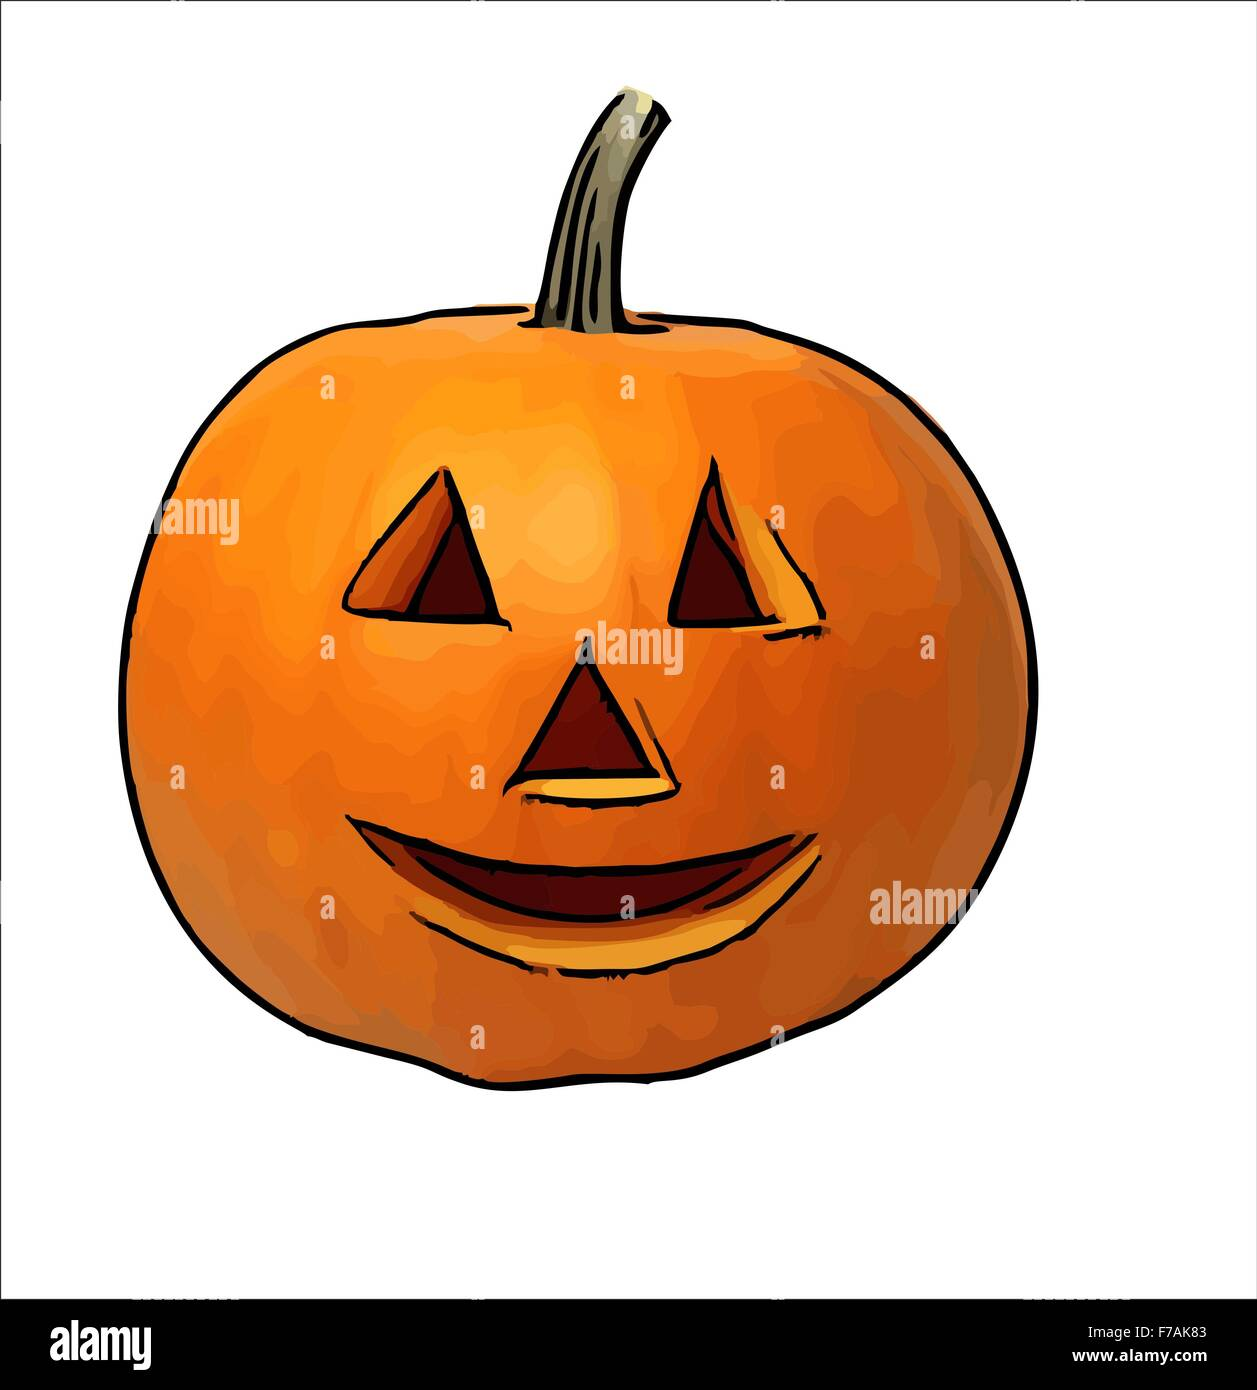 Halloween Pumpkin Drawing Picture.Halloween Pumpkin Children Drawing Halloween Pumpkins Stock Photo